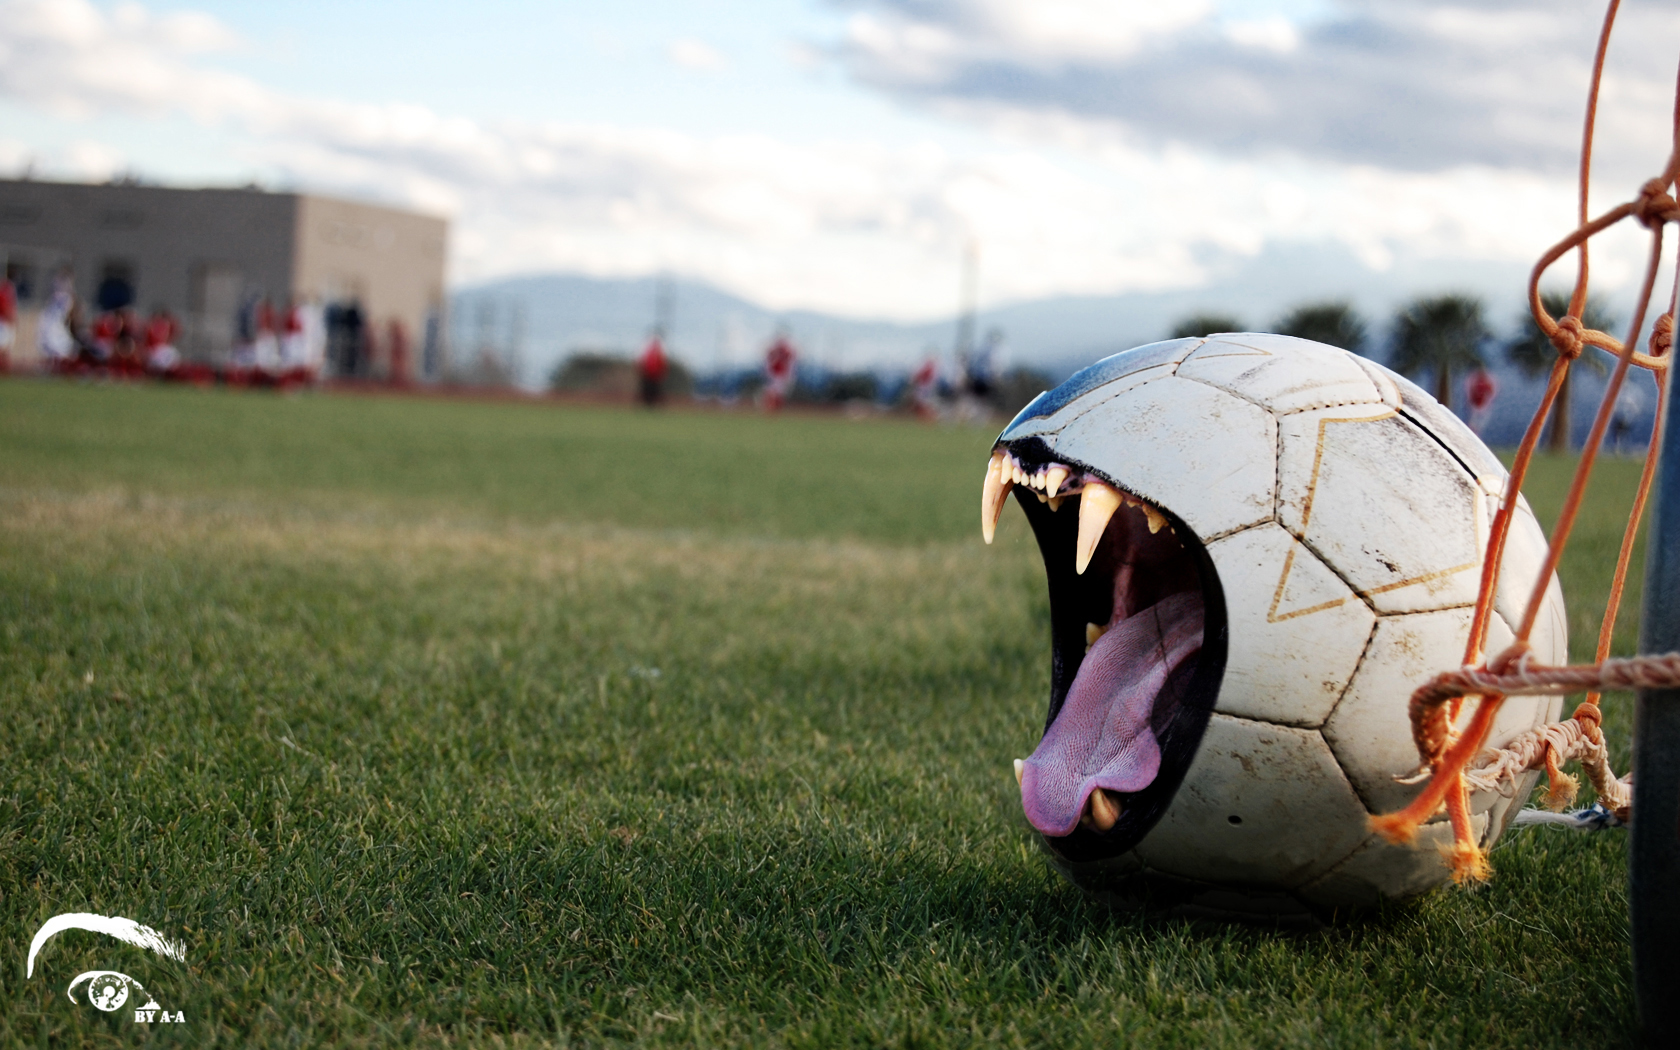 balls_fangs_football_not_soccer_ball_cat_desktop_1680x1050_hd-wallpaper-534091